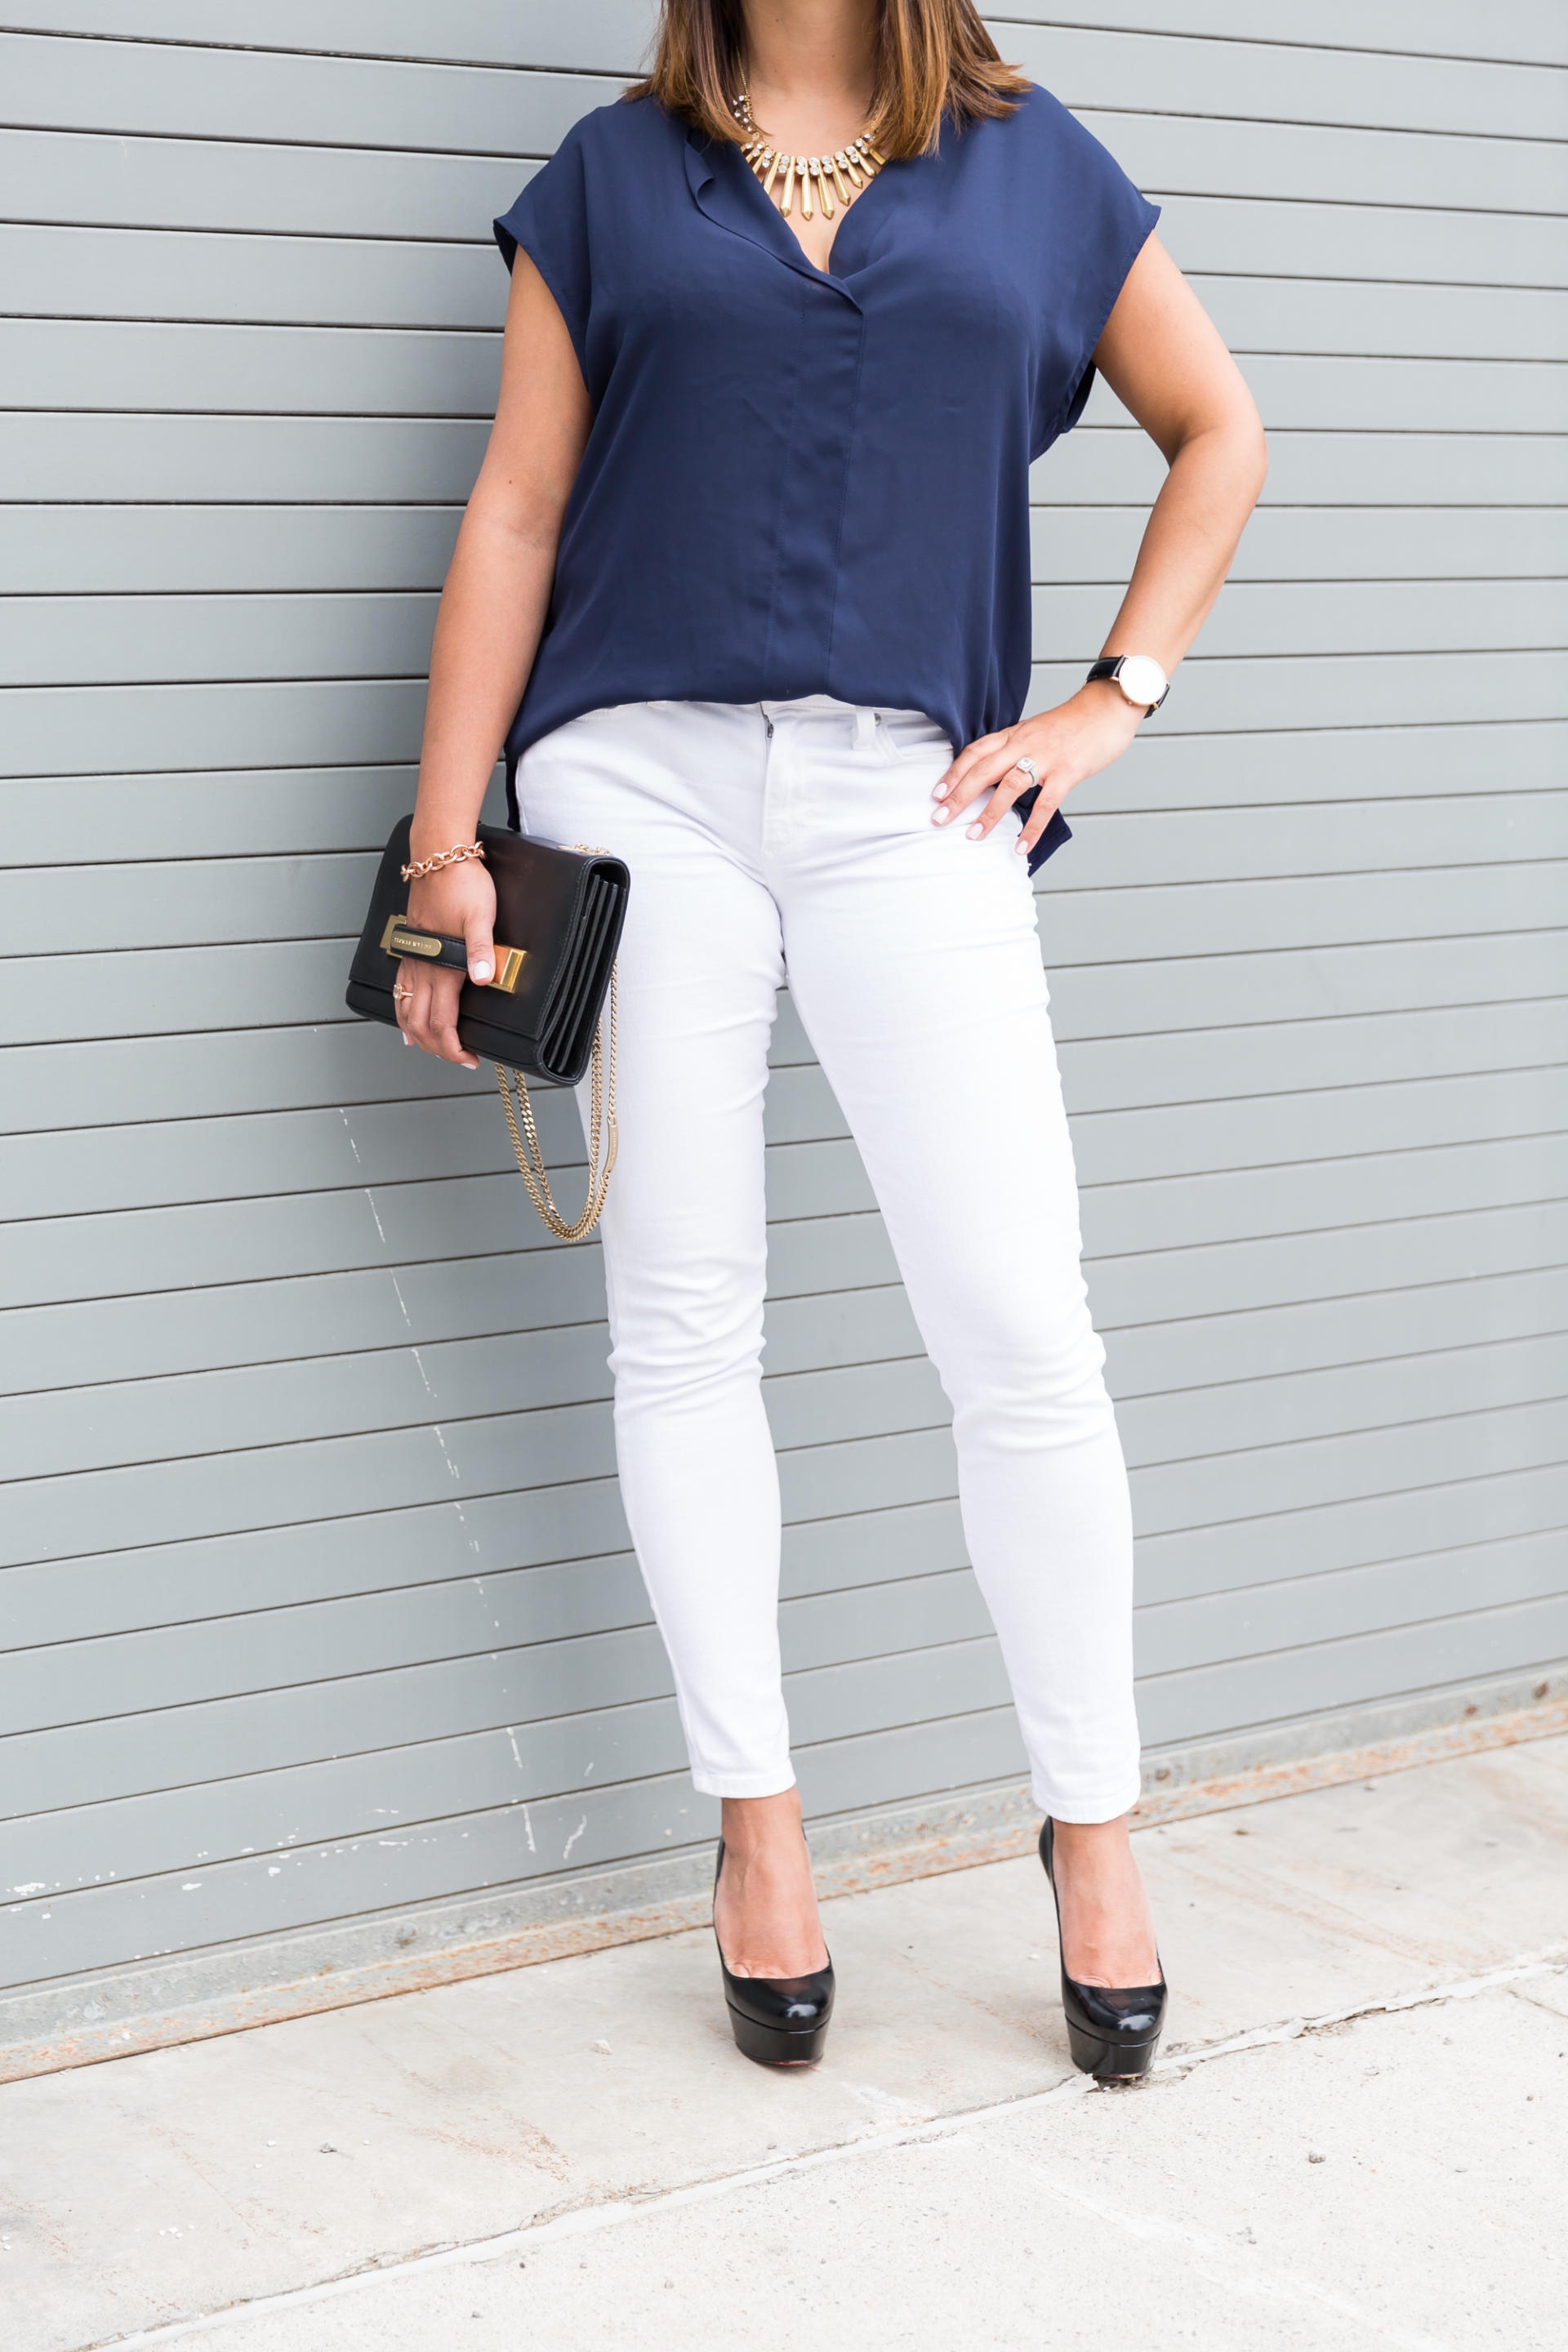 OverExposed_Three_Ways_To_Wear_White_Jeans_25